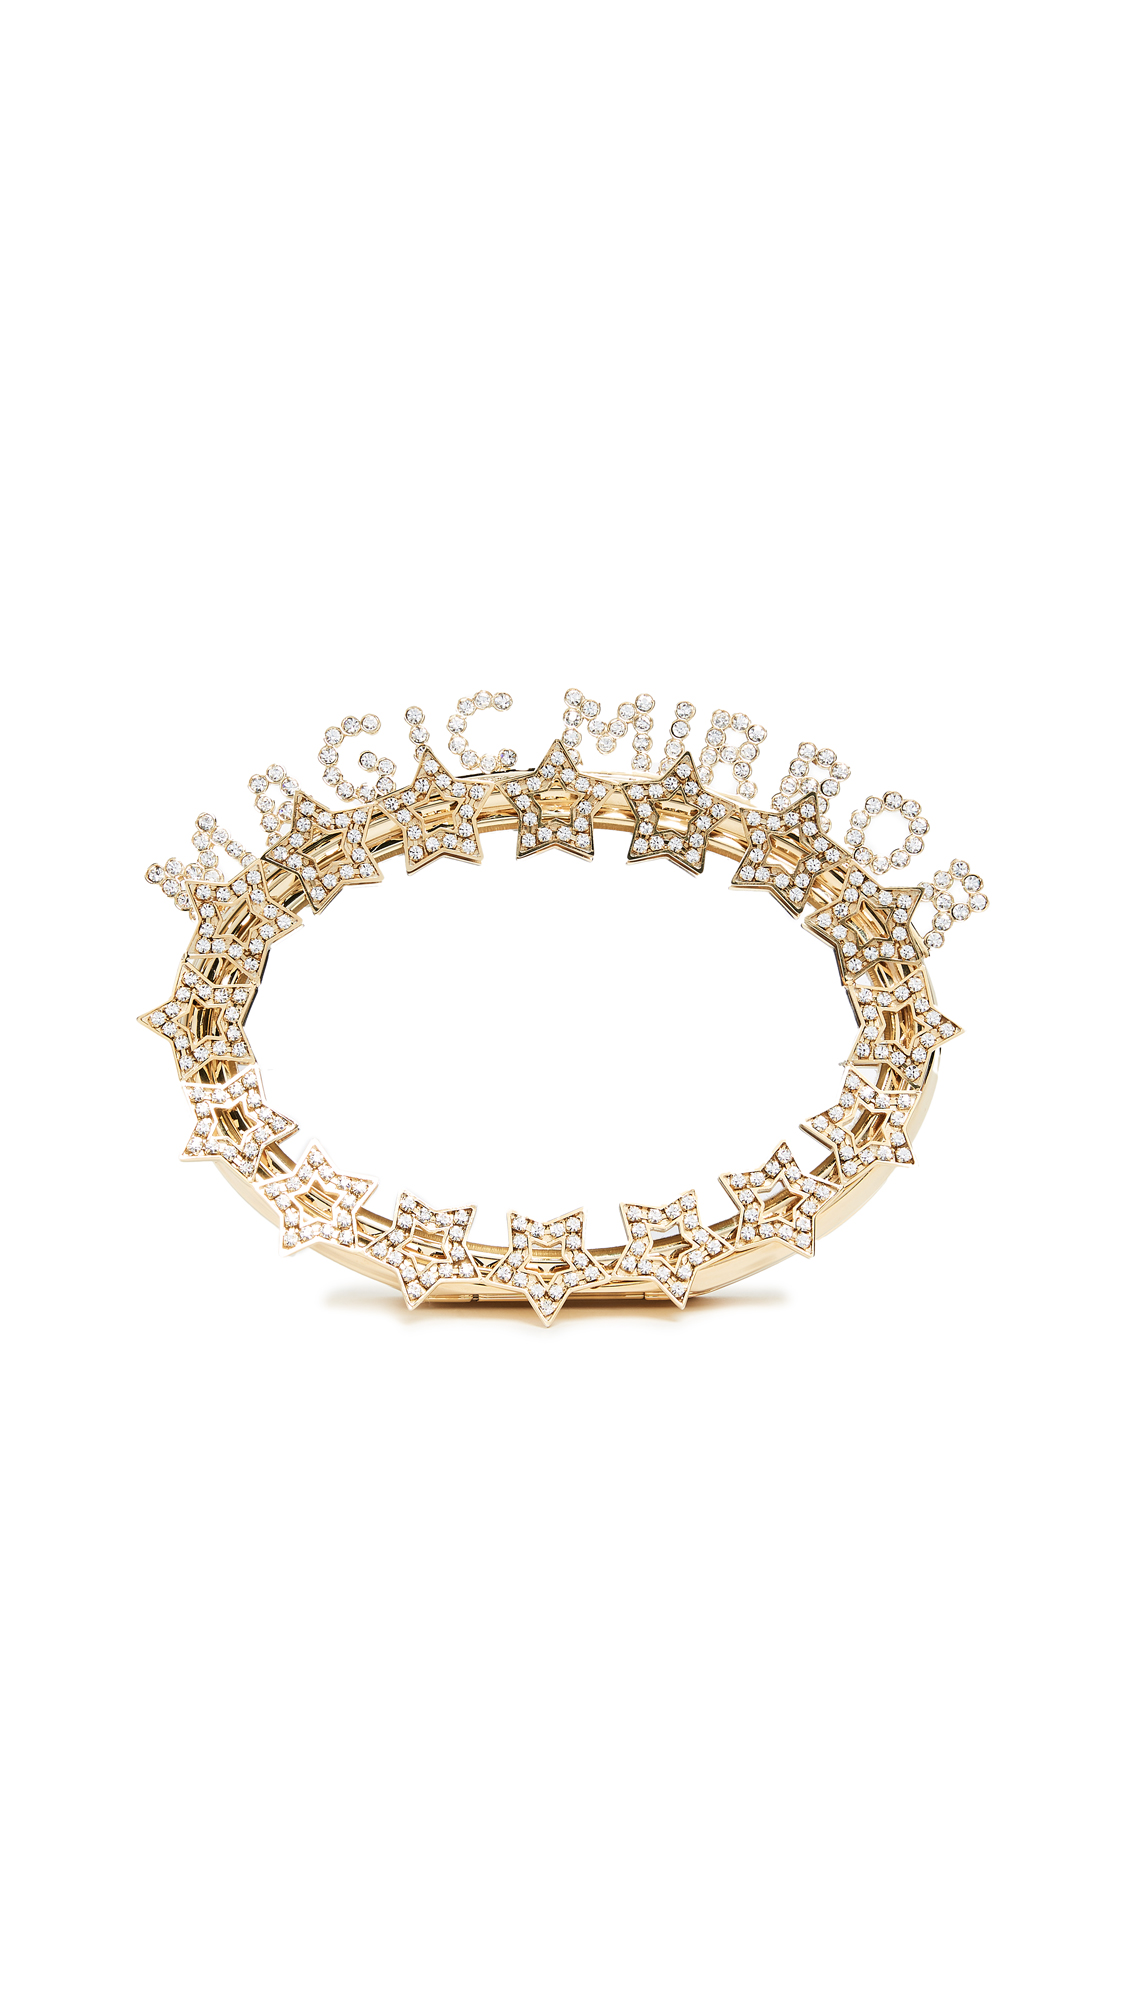 BENEDETTA BRUZZICHES MAGIC MIRROR CLUTCH